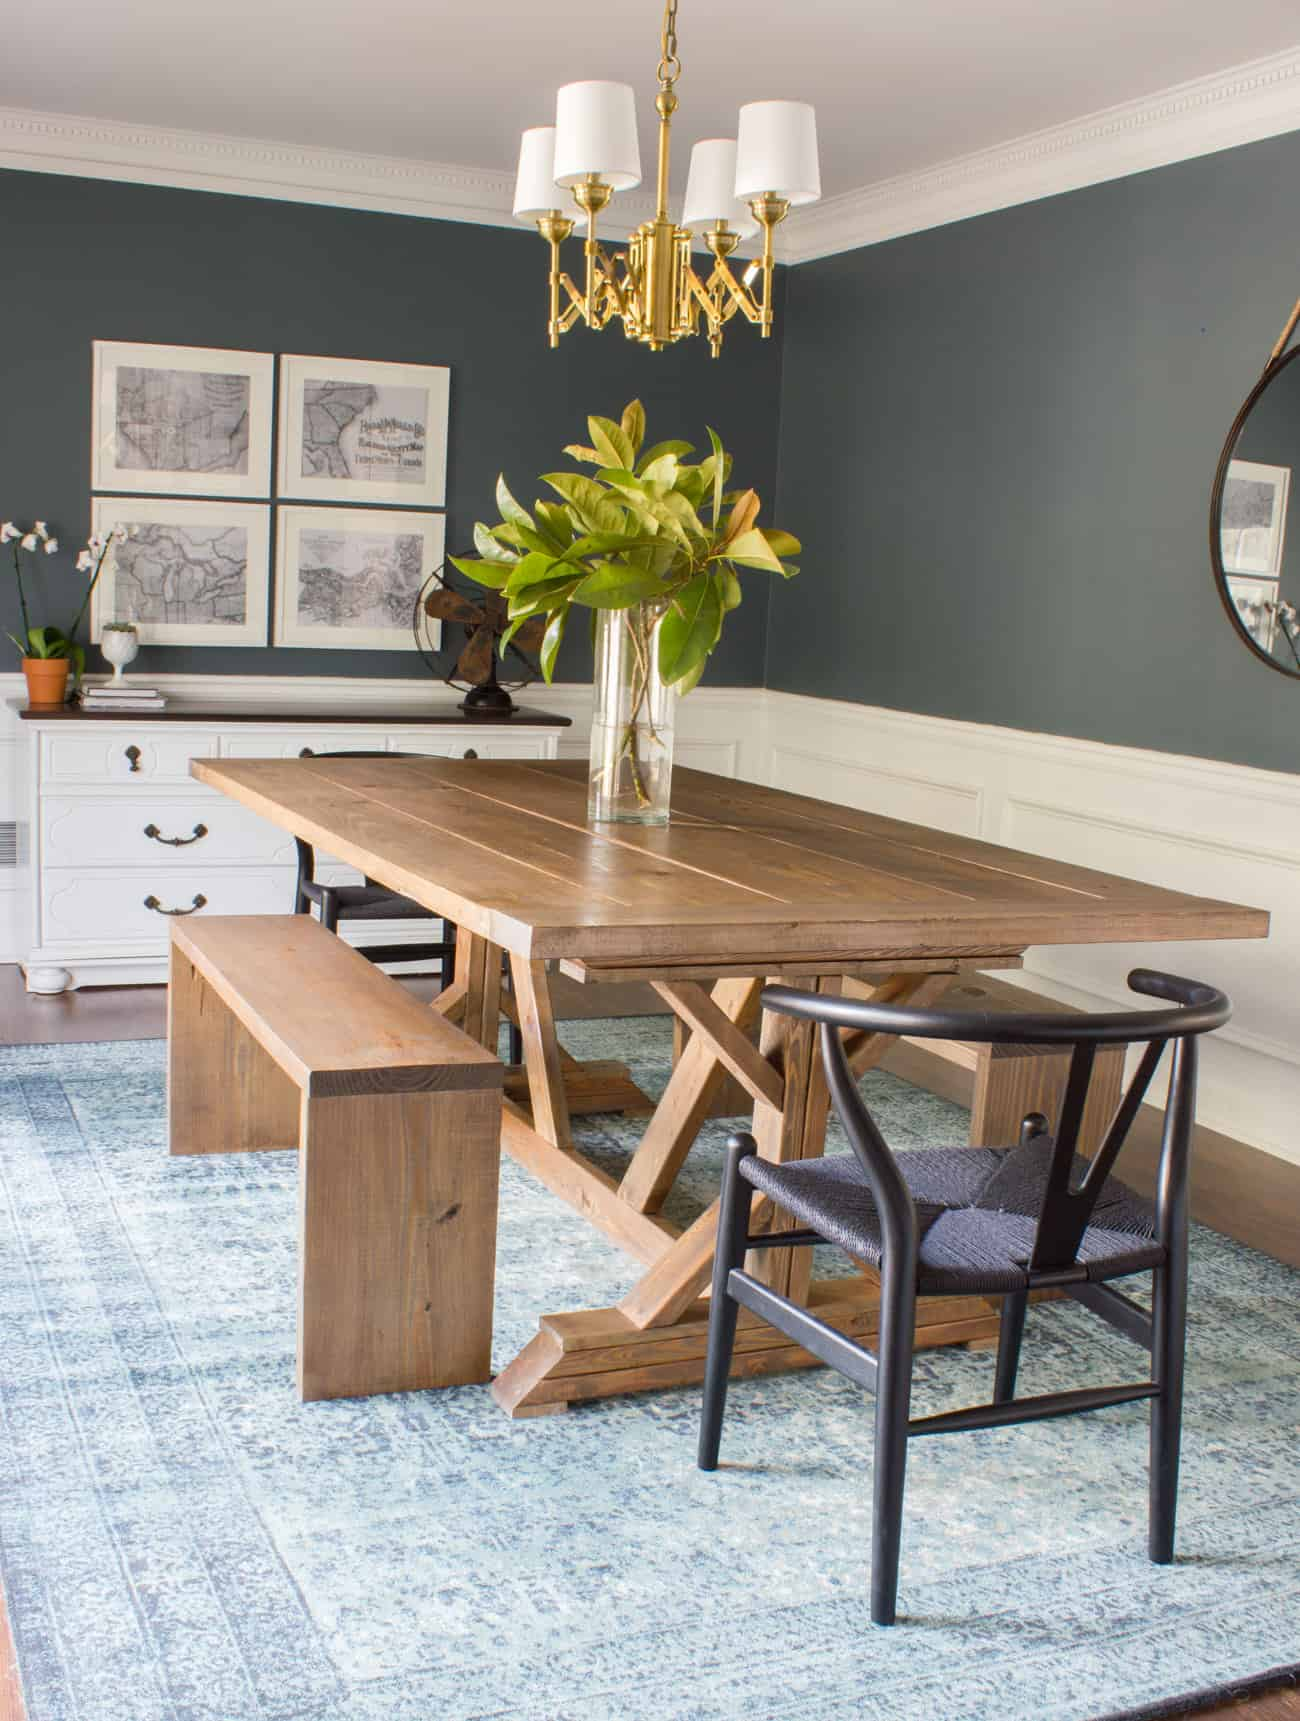 bench decor in dining room